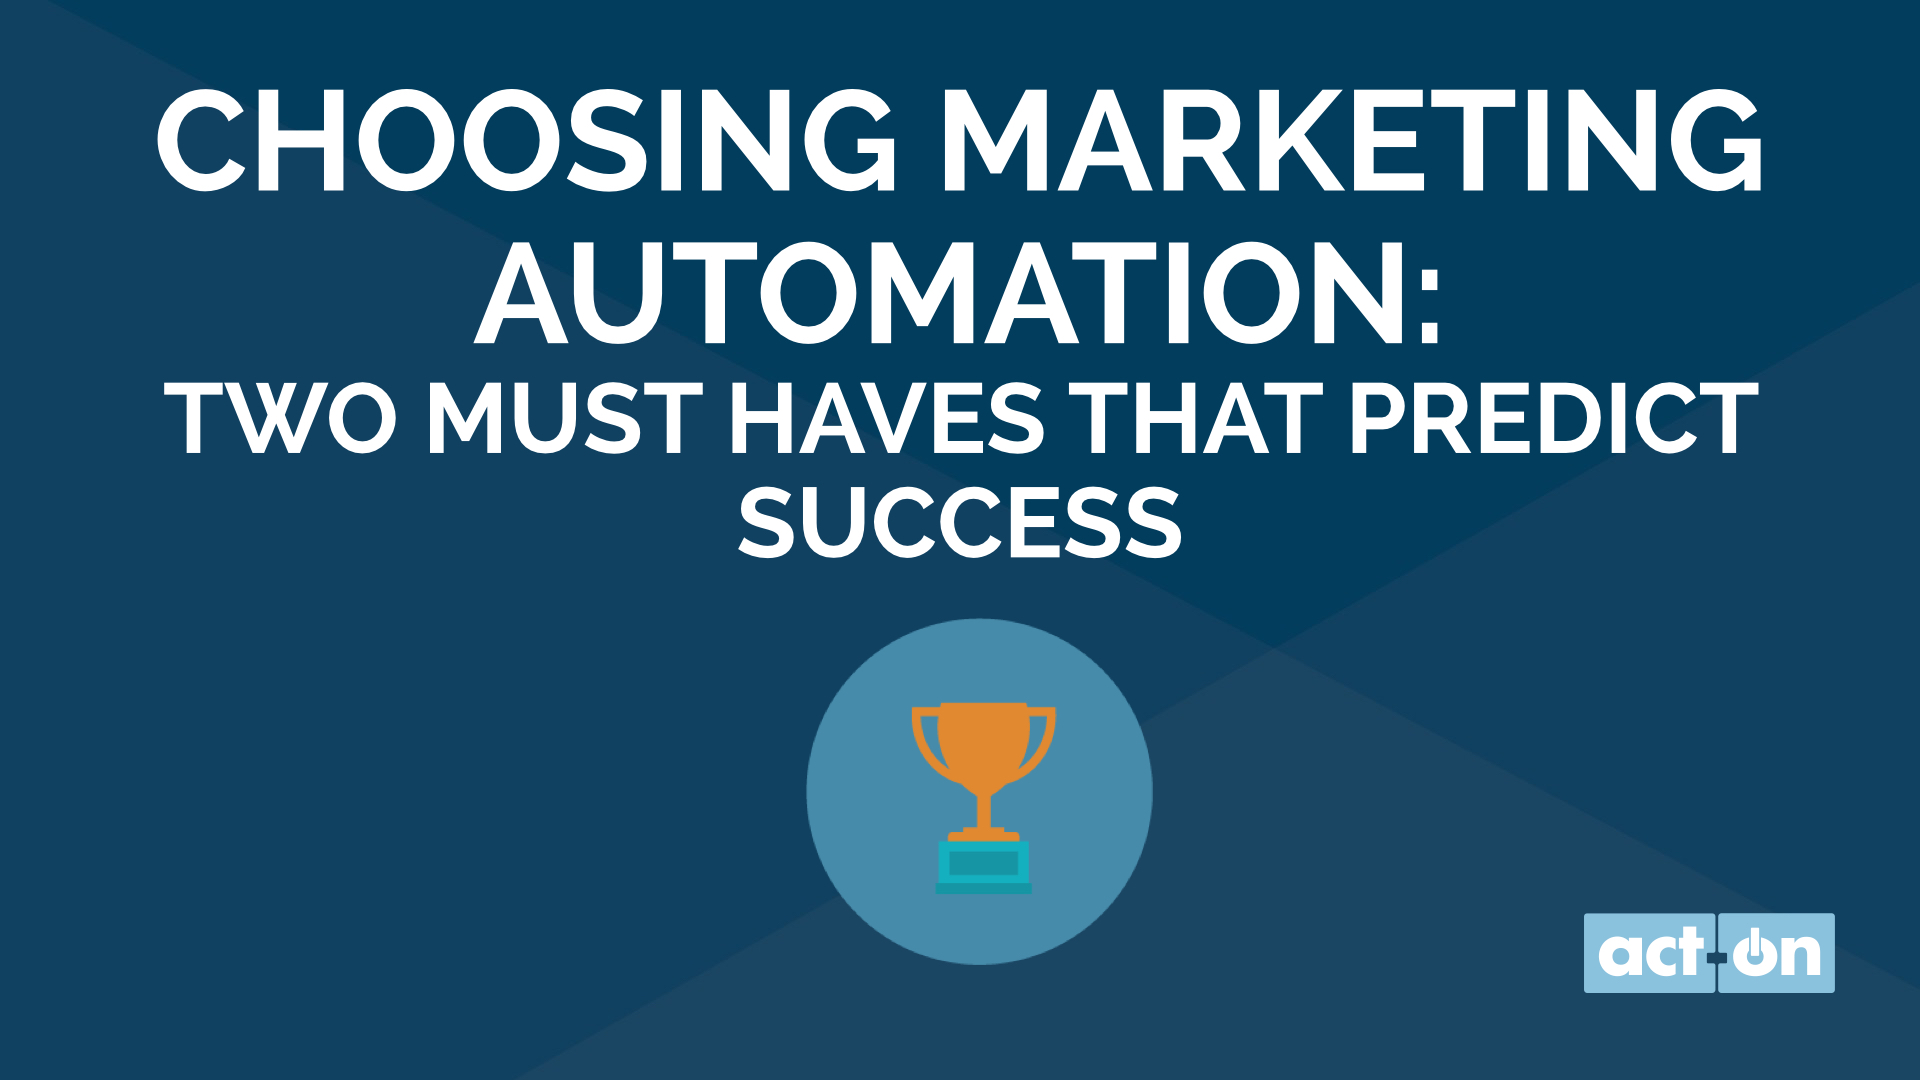 Choosing Marketing Automation: Two Must Haves that Predict Success